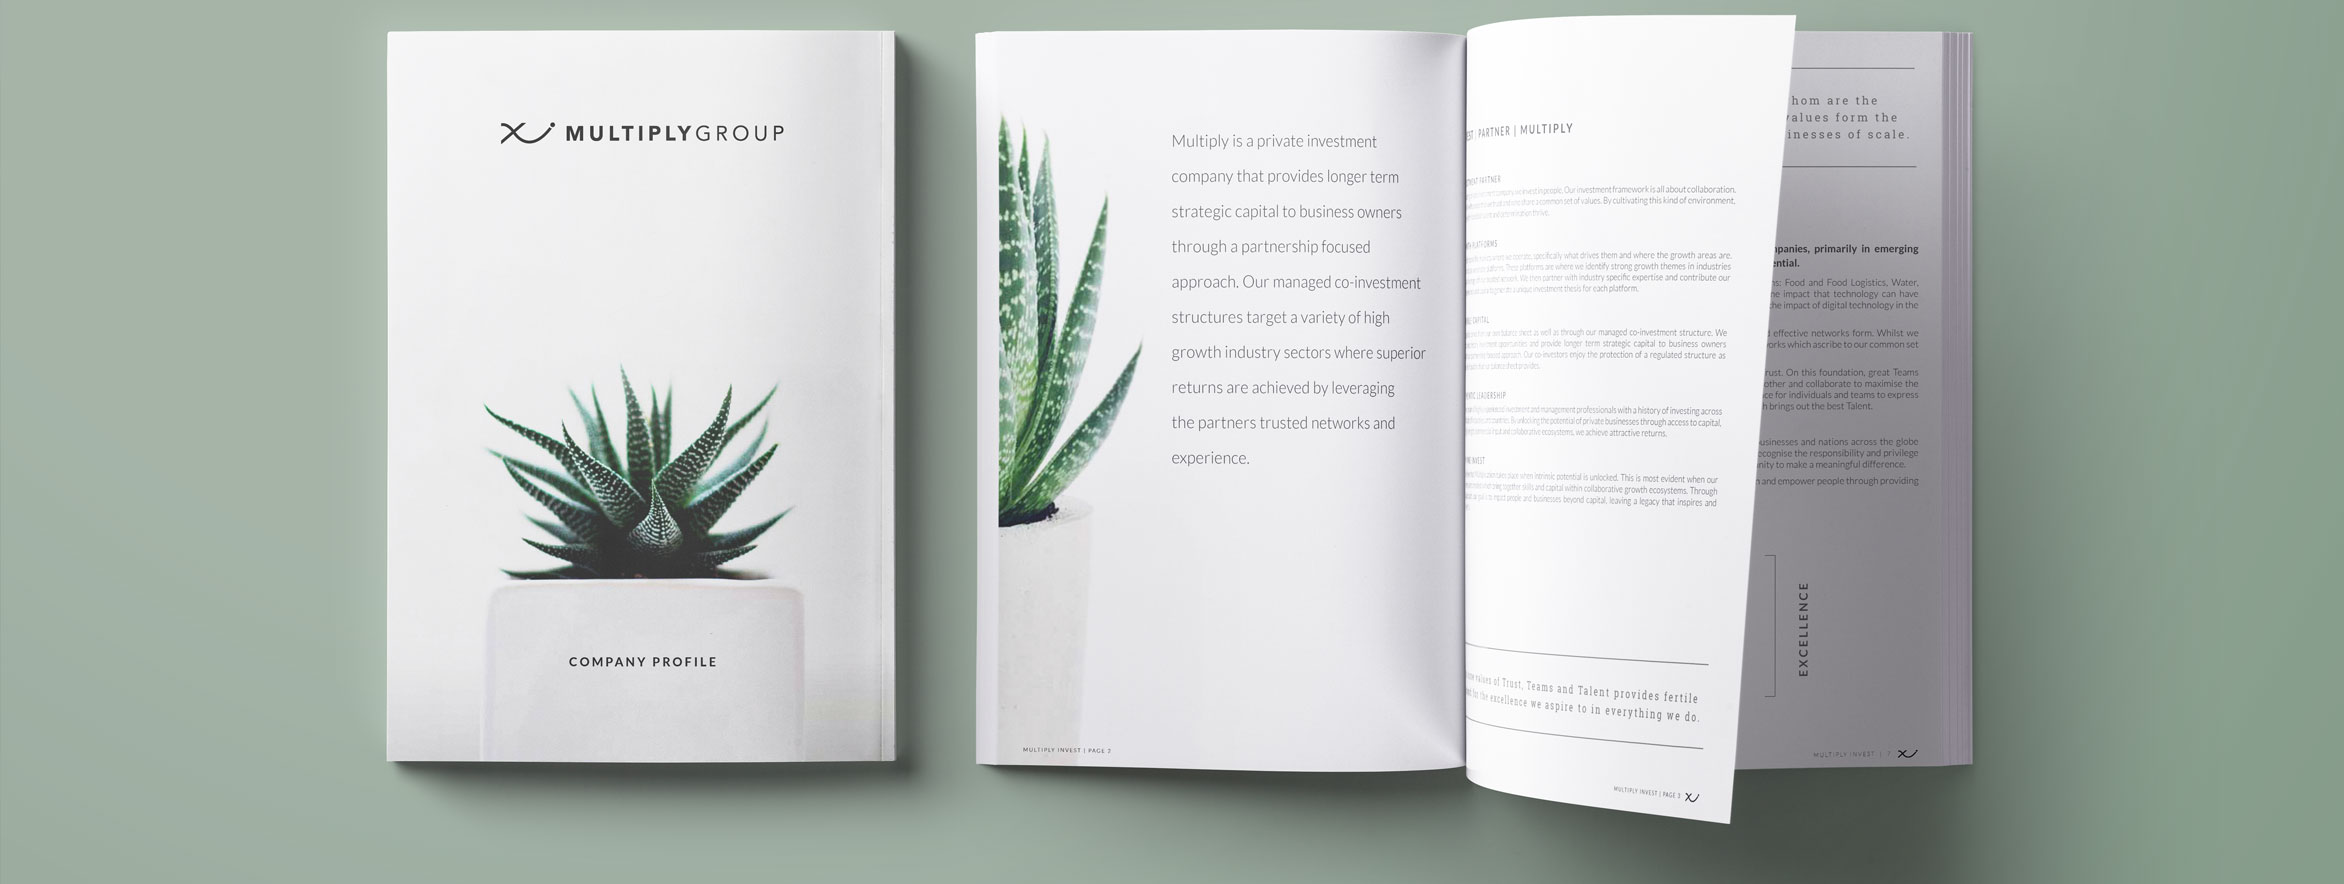 Brochure design and marketing for private equity, private investment and joint venture company